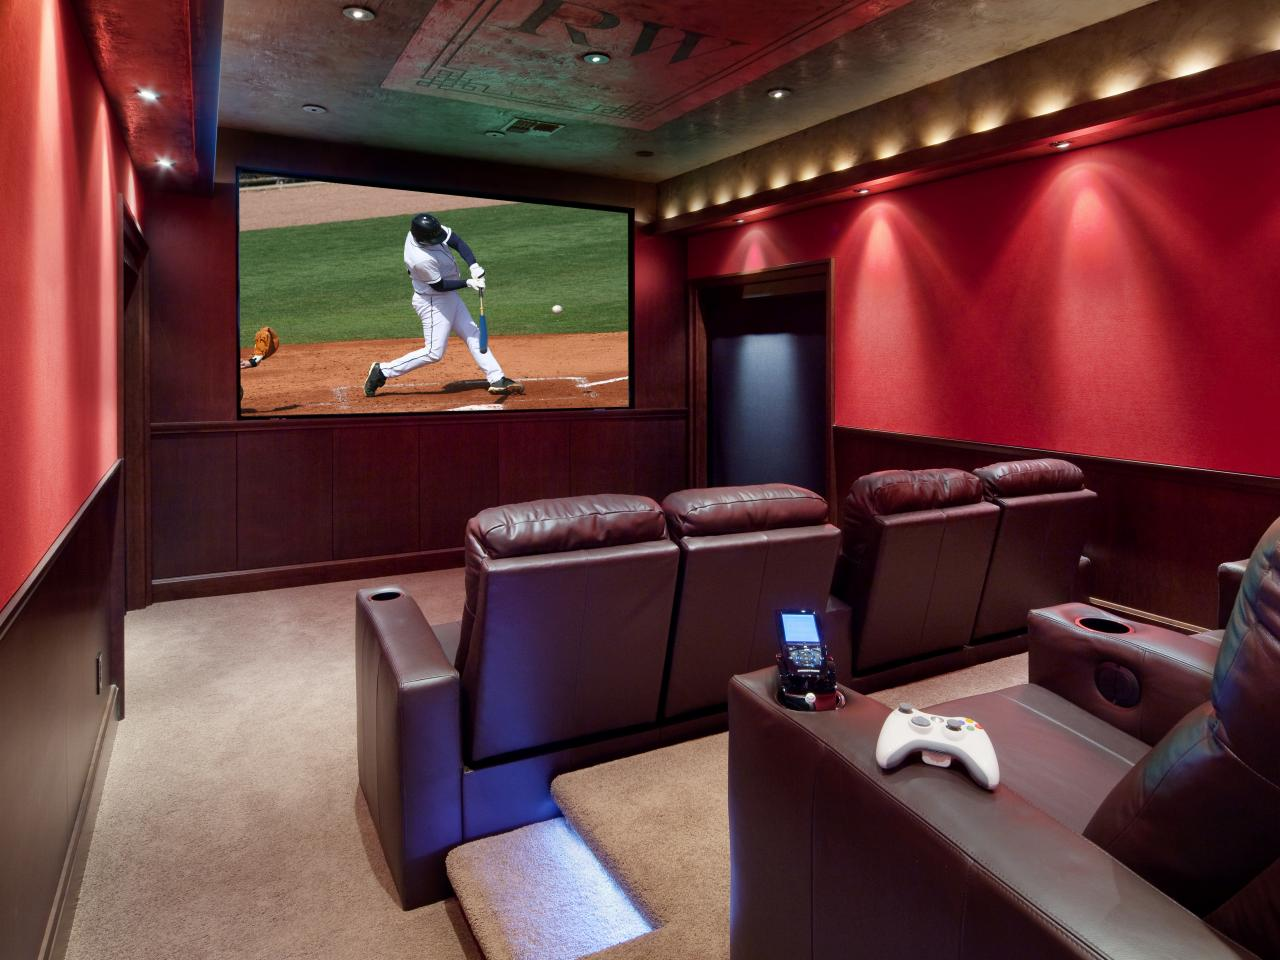 Home Theater Design Ideas home theater room design for good mind blowing home theater design Beneath The Stars